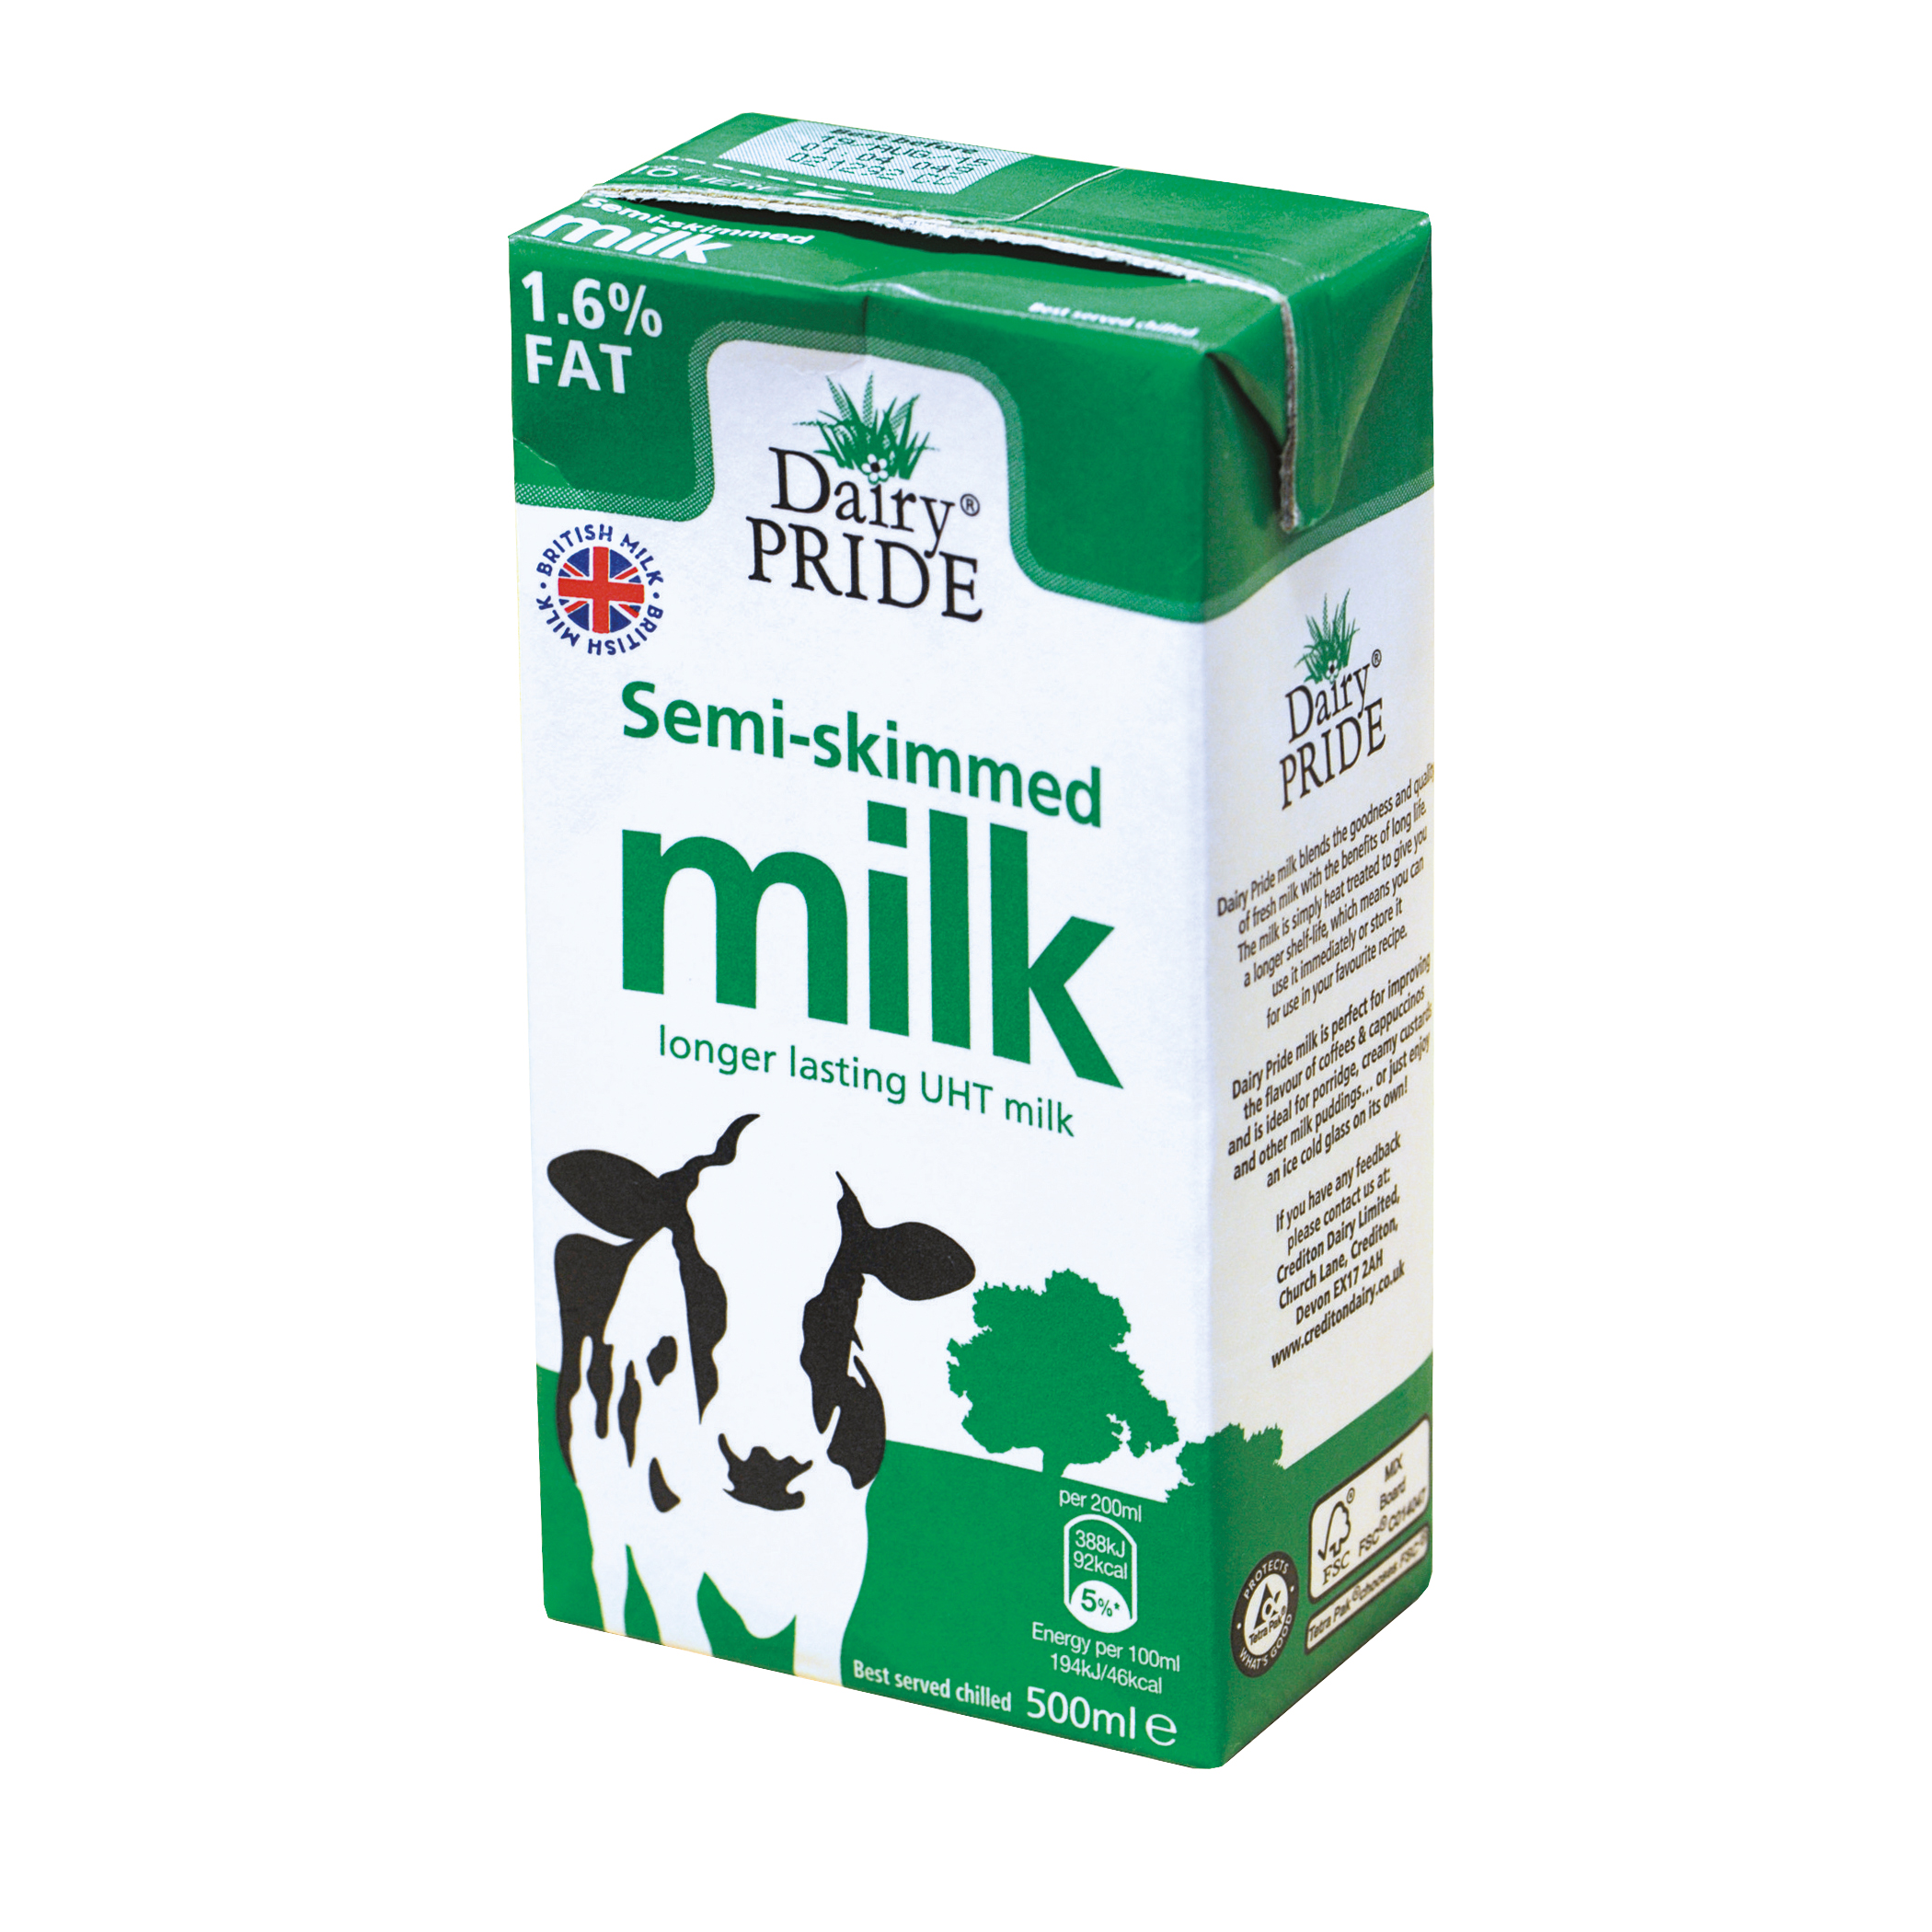 Dairy Pride Semi Skimmed Milk UHT 500ml Ref 0402058 Pack 12